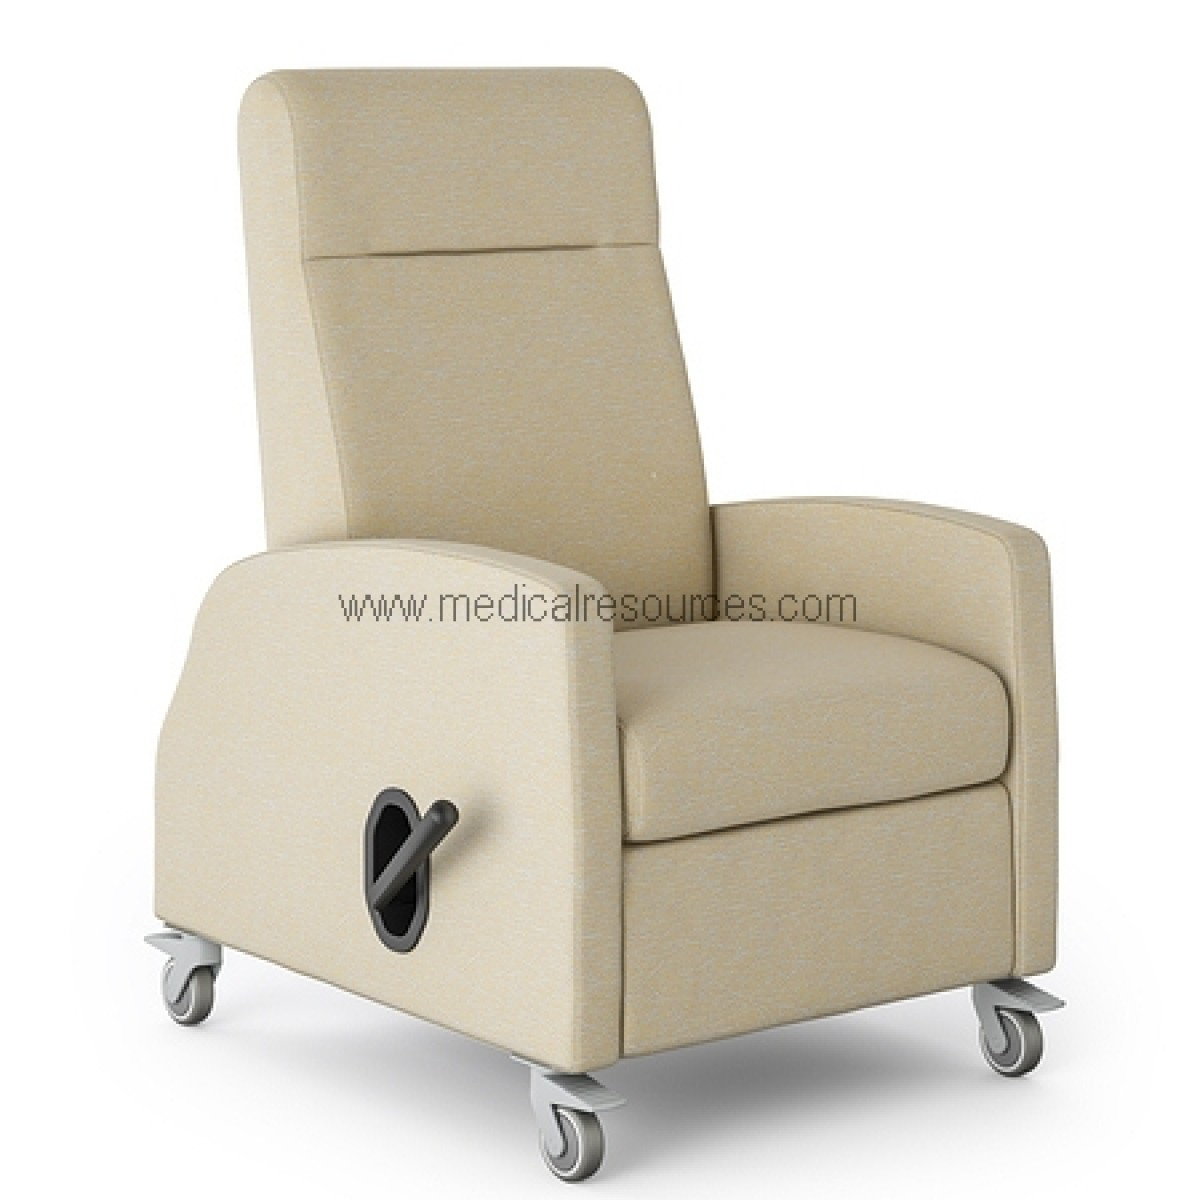 La-Z-Boy Rema Mobile Medical Recliner  sc 1 st  Medical Resources : bariatric recliners - islam-shia.org